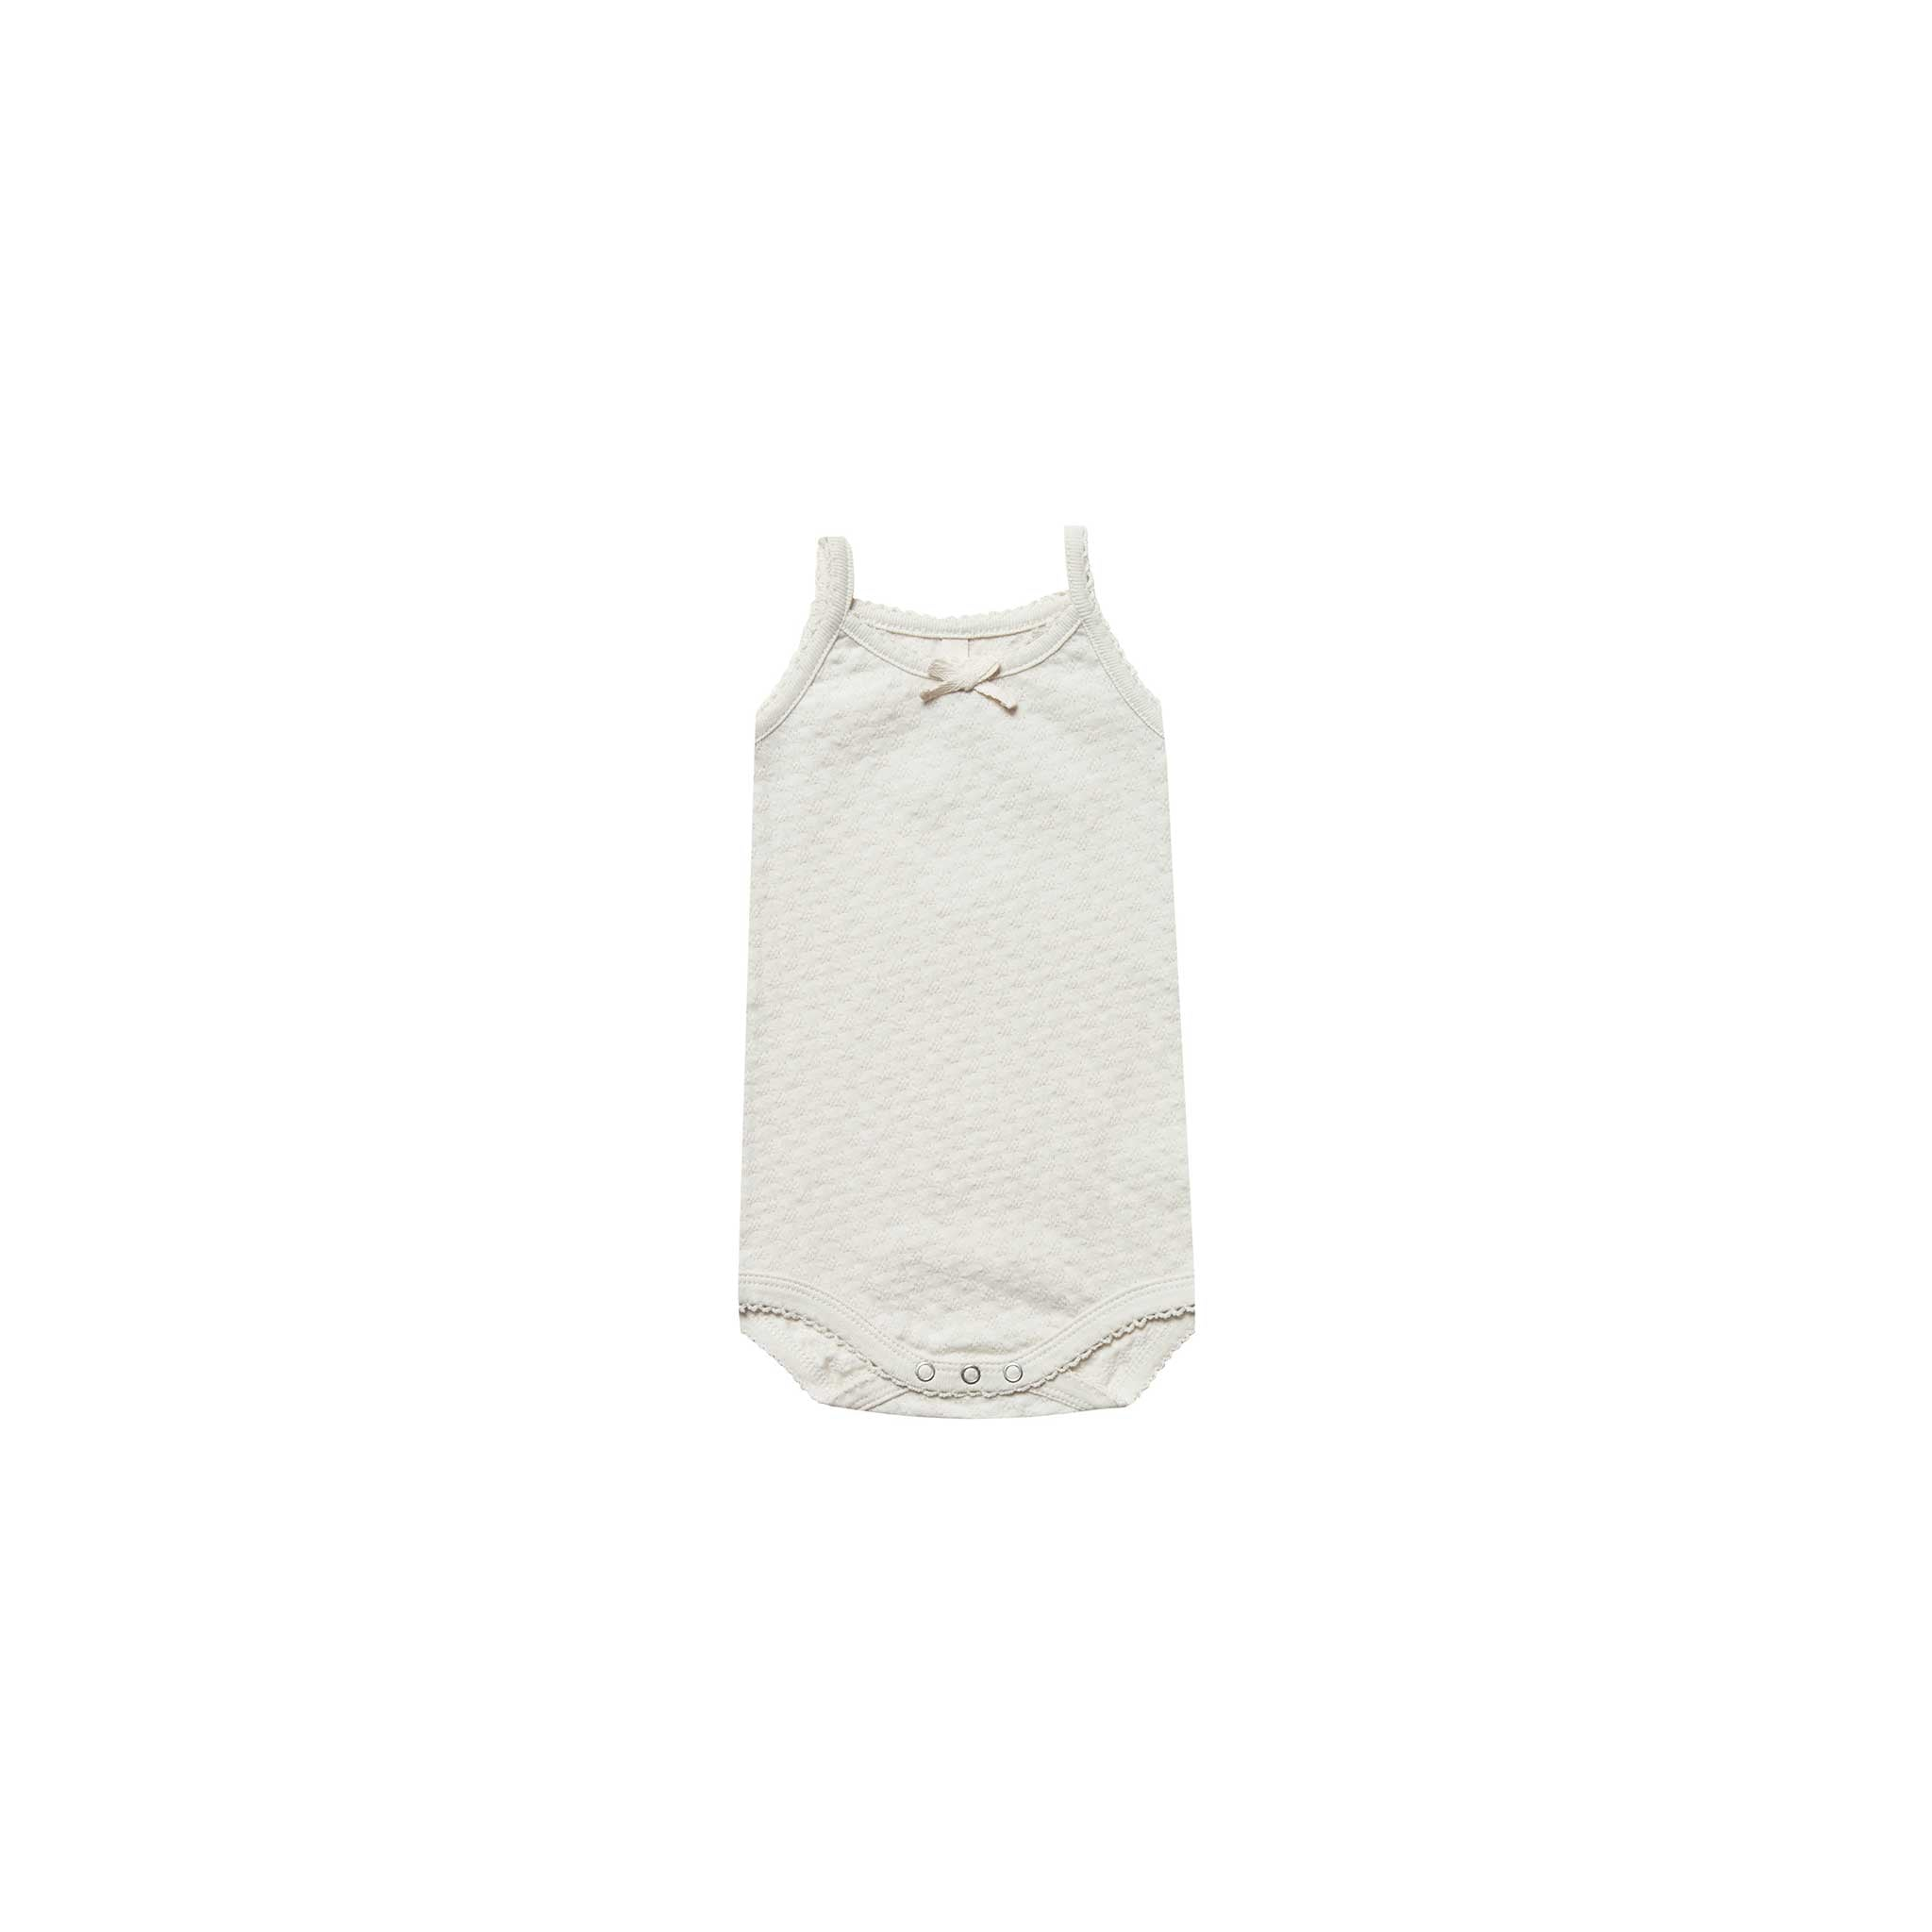 QUINCY MAE I Pointelle Tank Onesie Pebble SS19